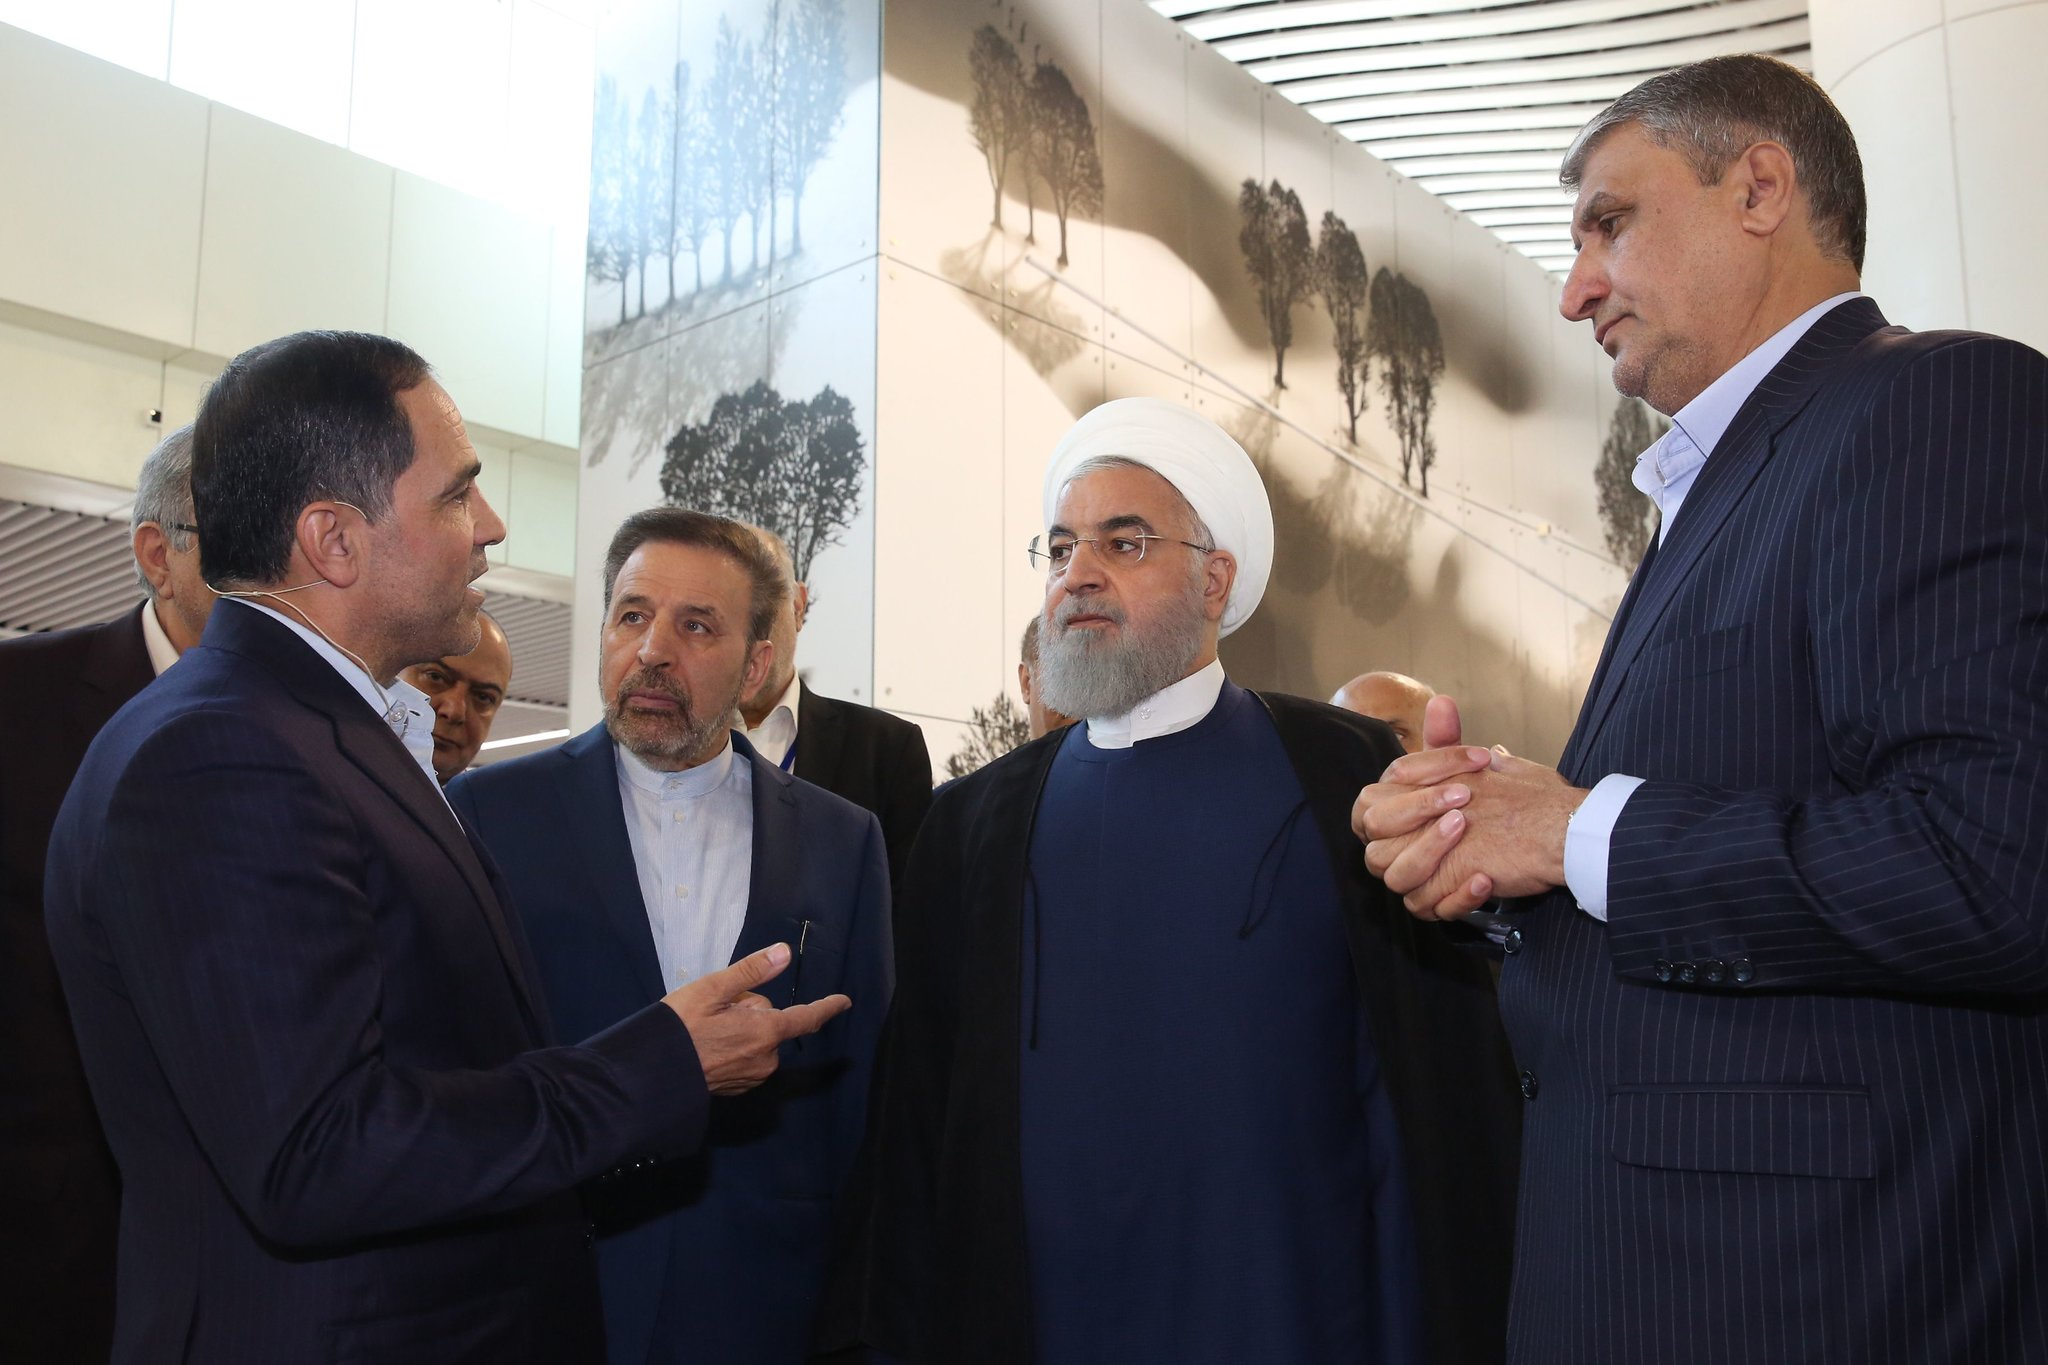 President Hassan Rouhani of Iran, second from right. The country is threatening to violate the terms of the nuclear deal if Europe does not provide relief from United States sanctions. Credit Iranian Presidential Office